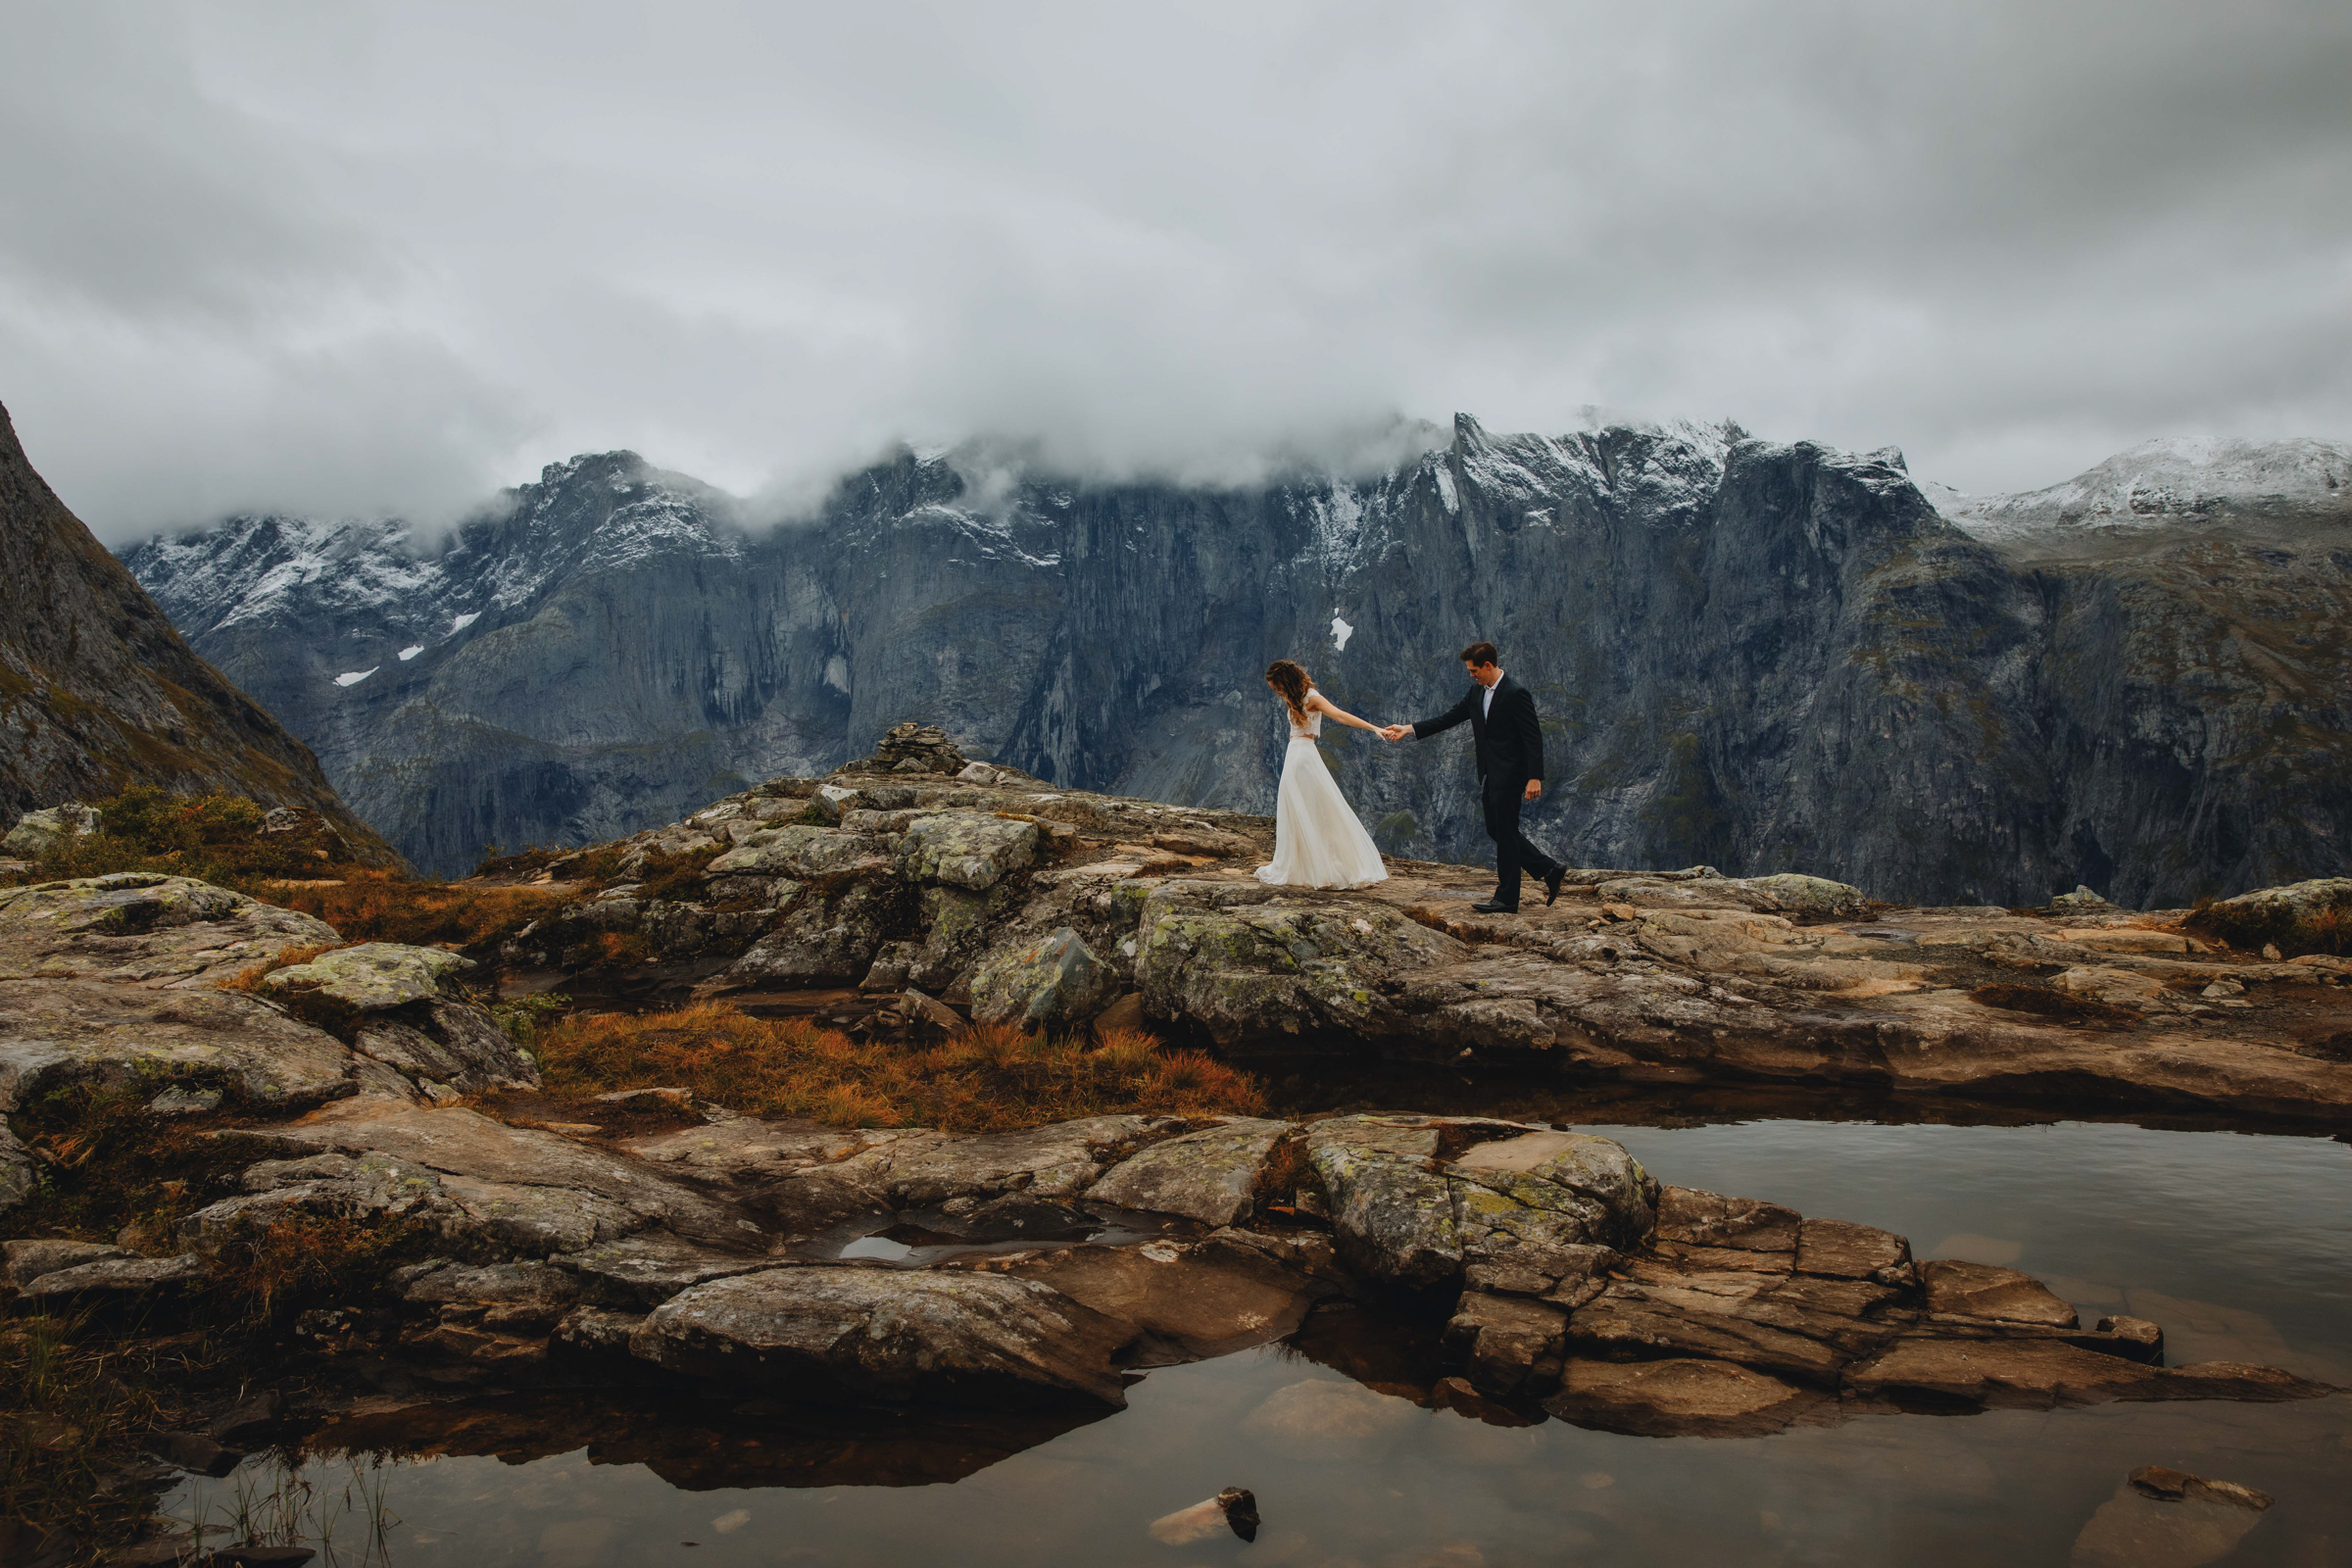 Bride leads groom through rocky landscape against mountains at Rauma Norway - photo by Christin Eide Photography